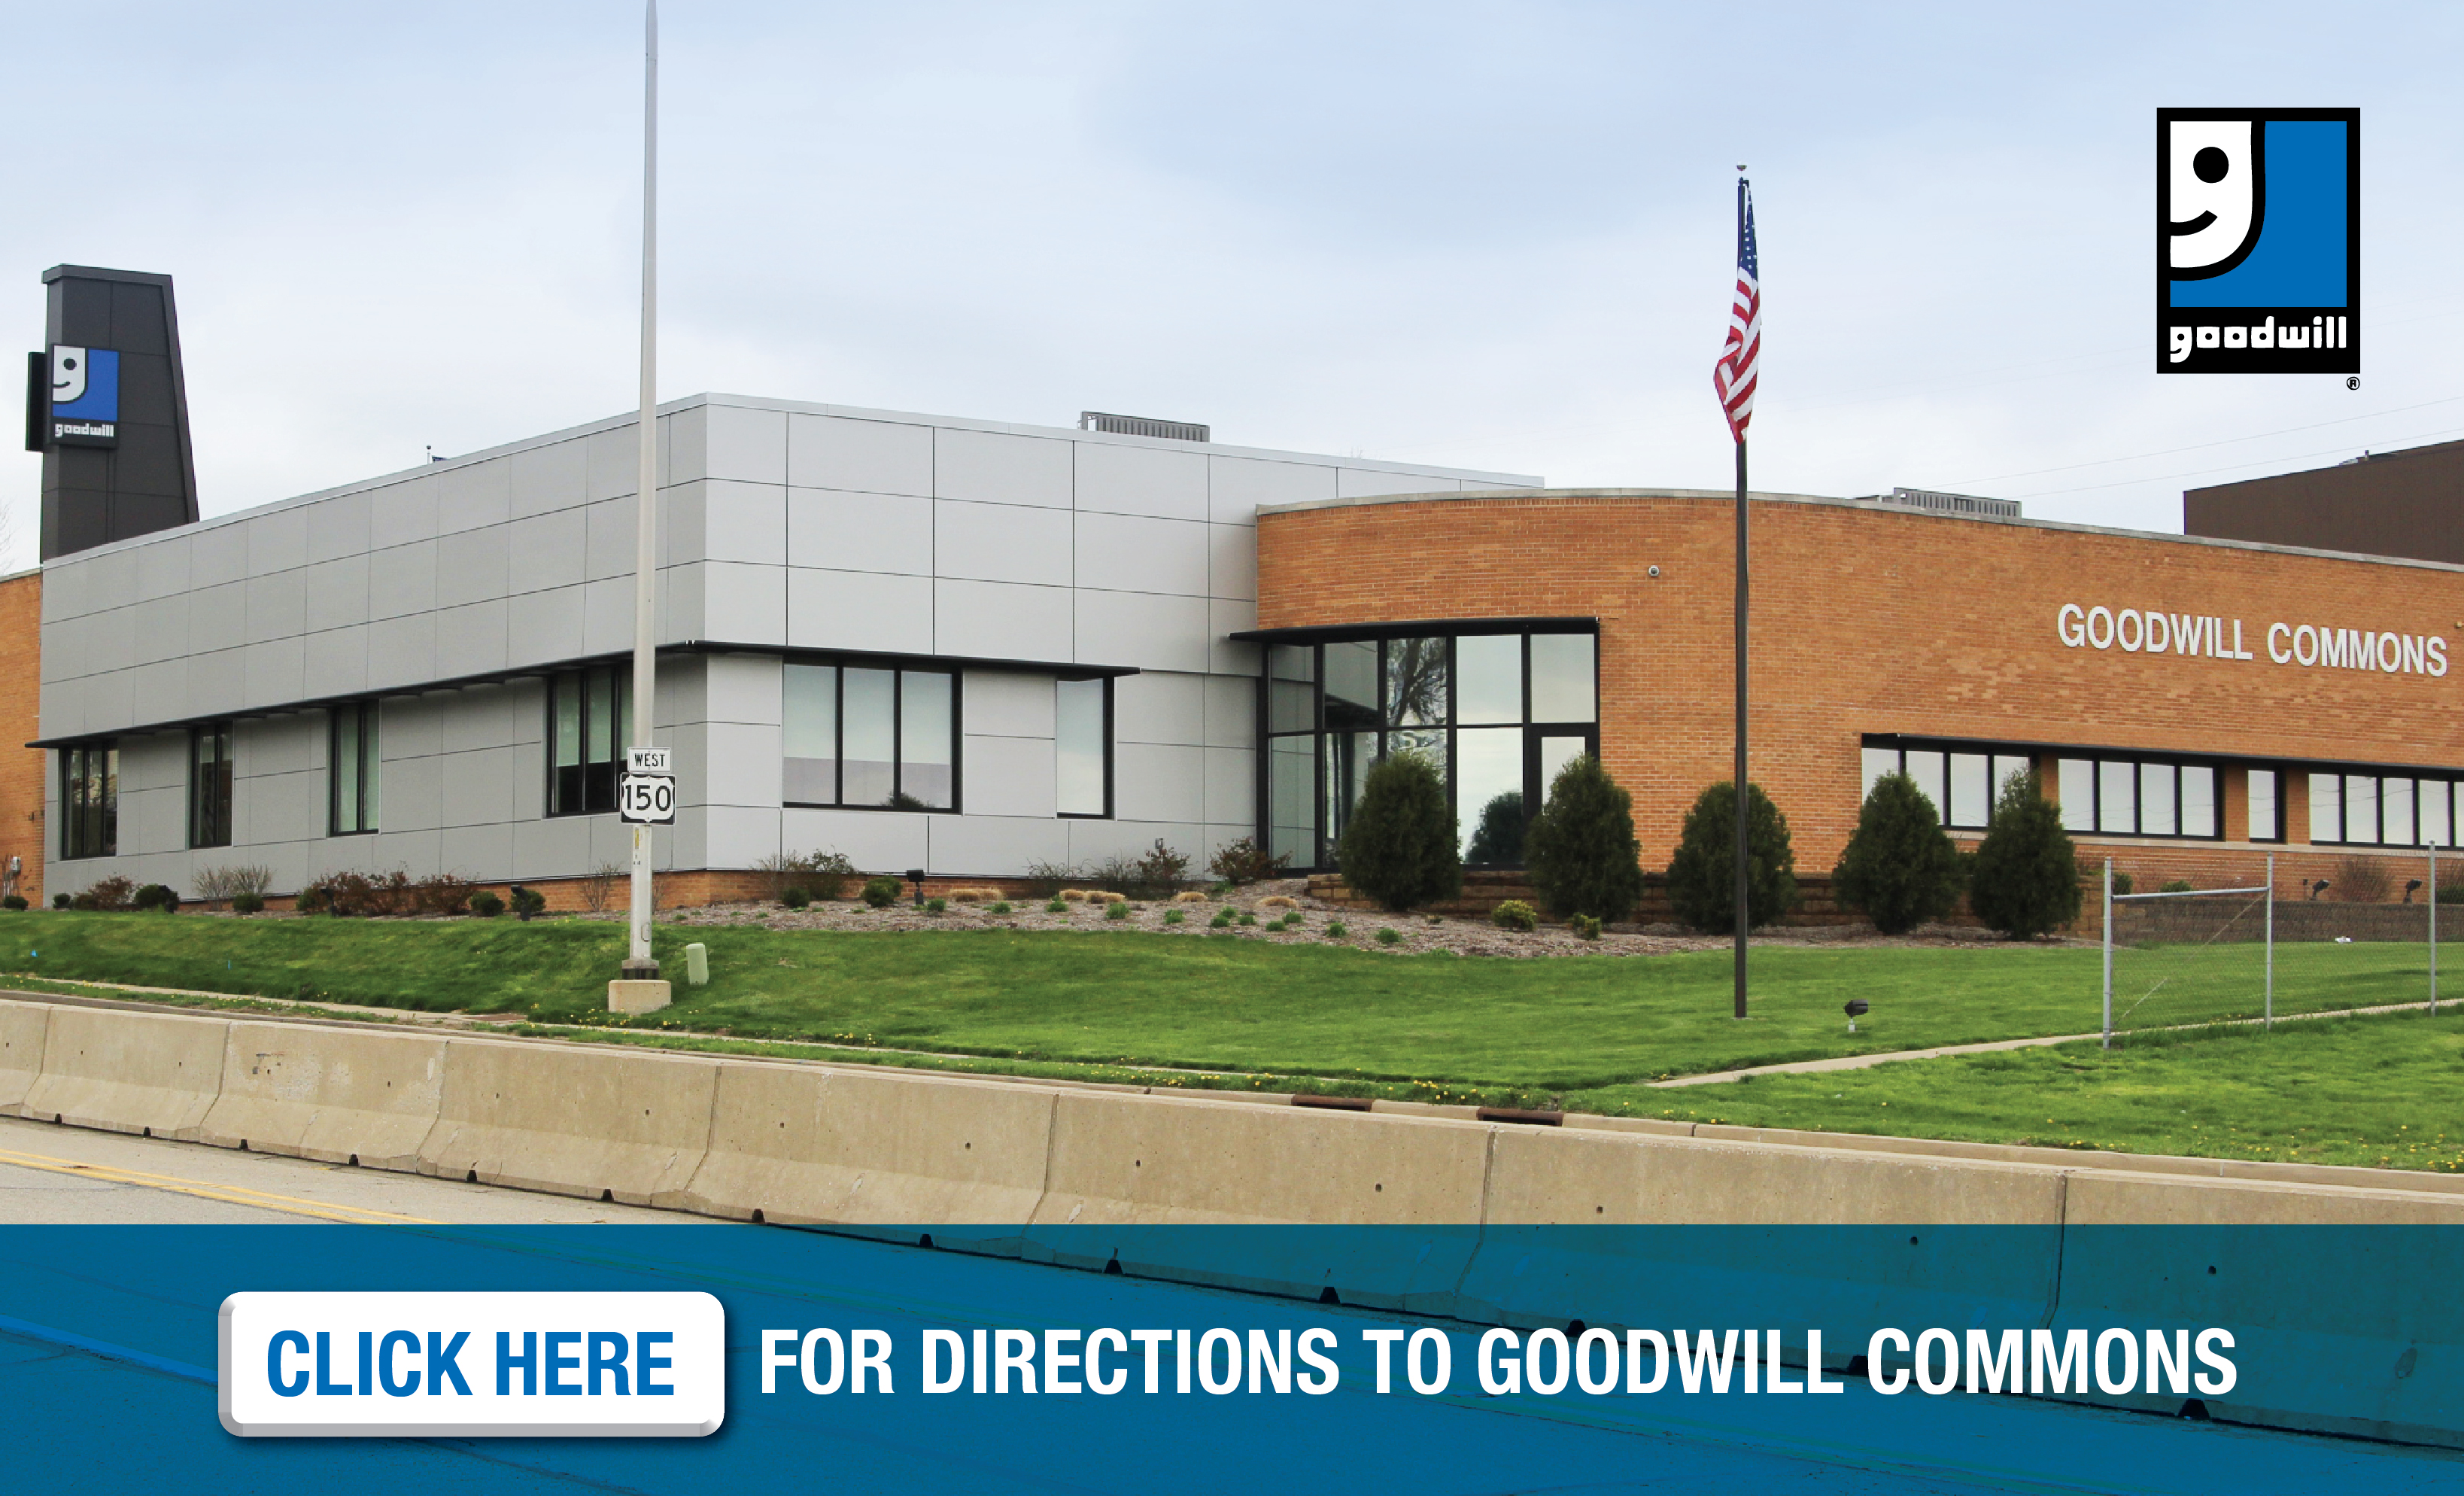 Goodwill industries of central illinois how to get here 01 xflitez Choice Image